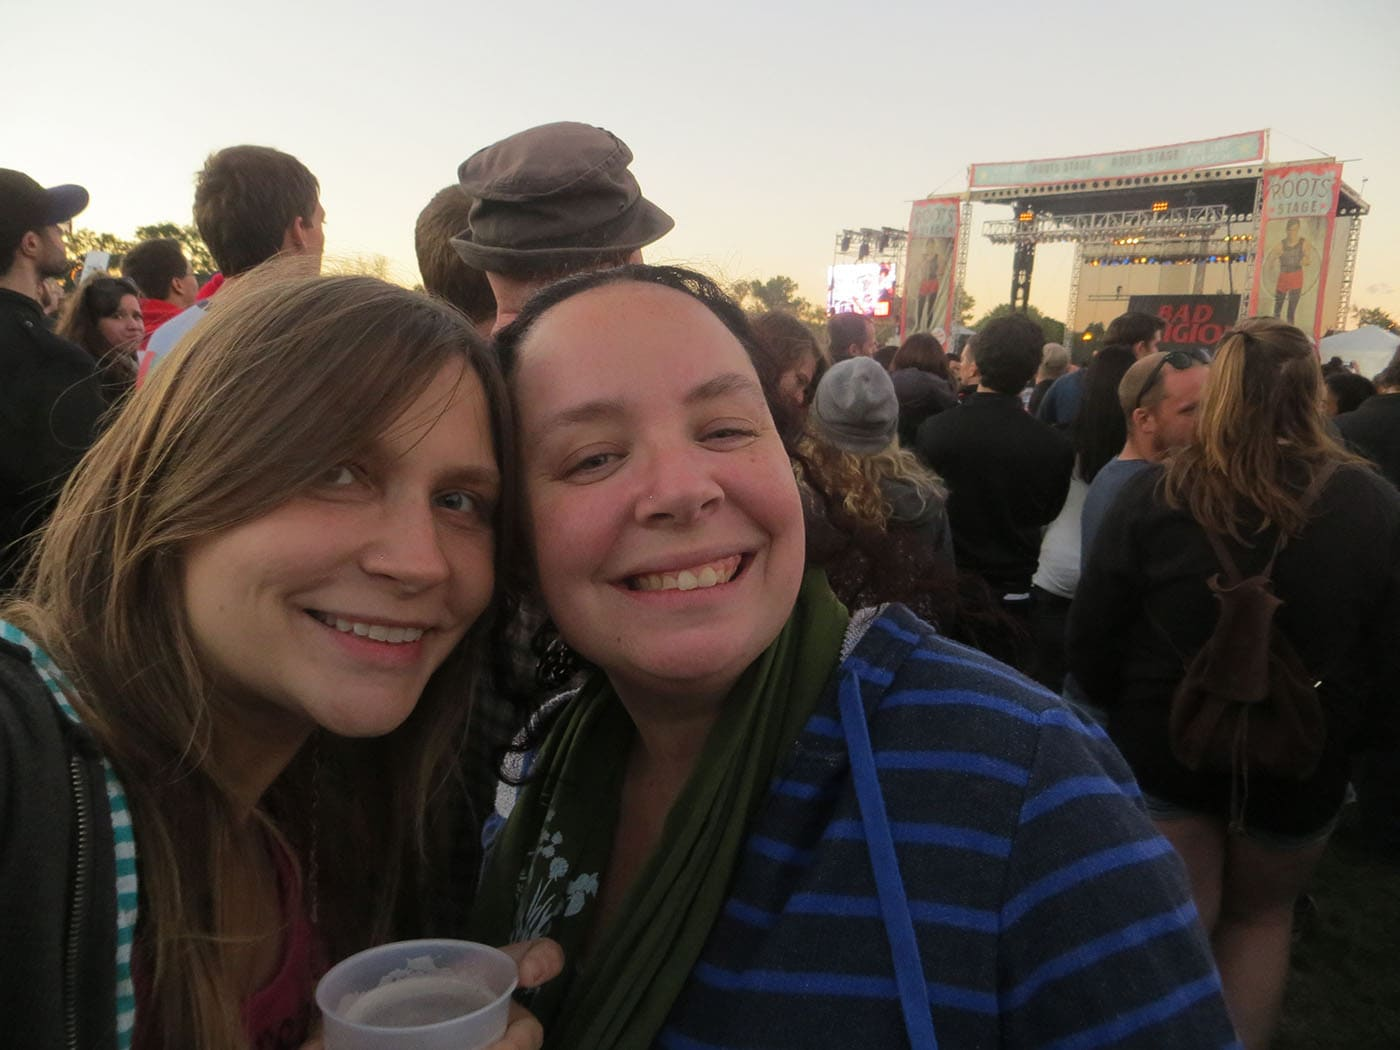 Heather and Val at the Bad Religion Concert at Riot Fest Chicago 2013